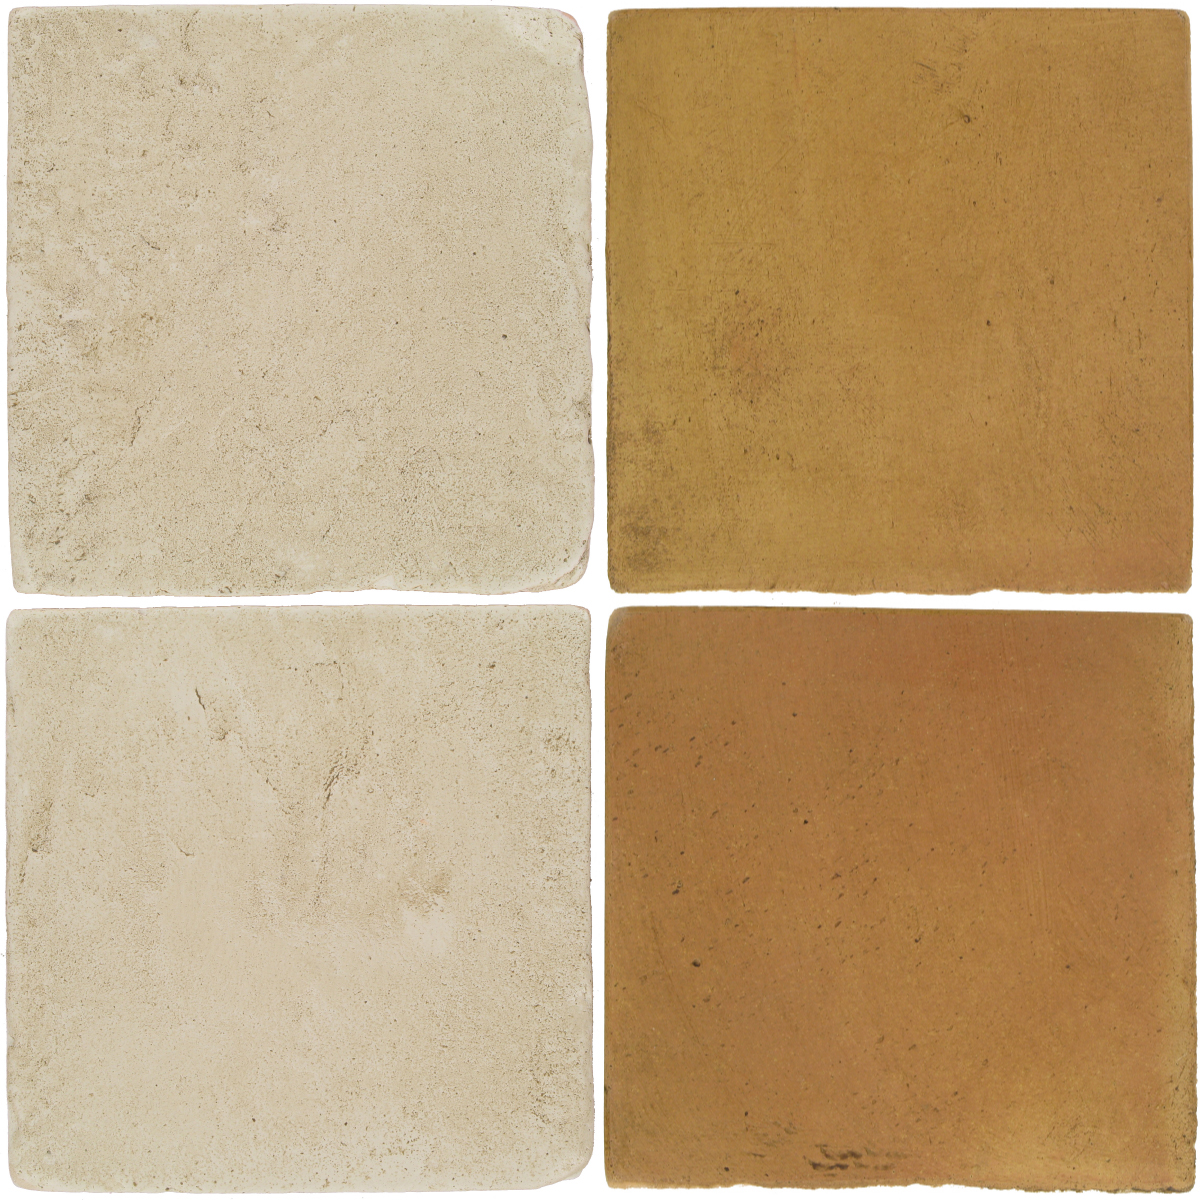 Pedralbes Antique Terracotta  2 Color Combinations  VTG-PGLW Glacier White + OHS-PSSW Siena Wheat